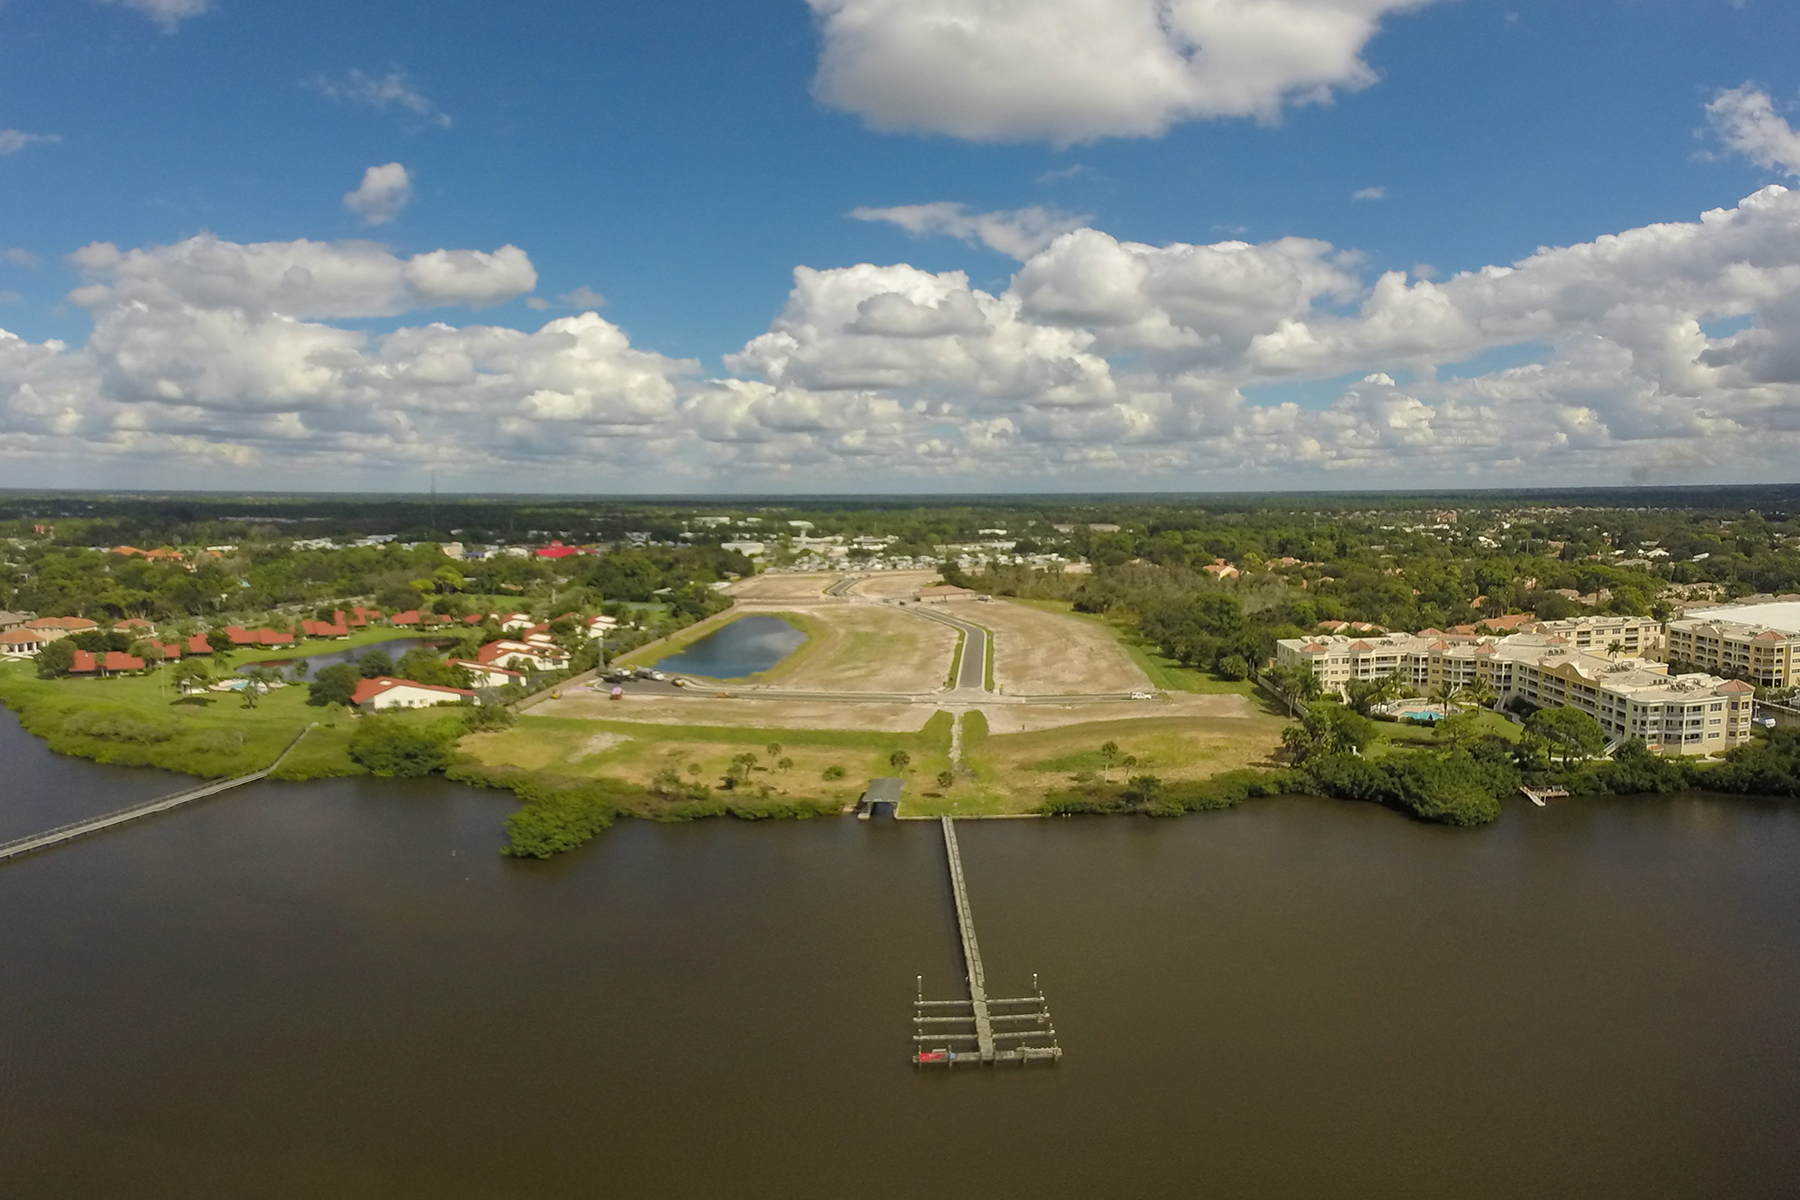 Land for Sale at BAYSIDE 35 Masthead Dr 35 Osprey, Florida, 34229 United States